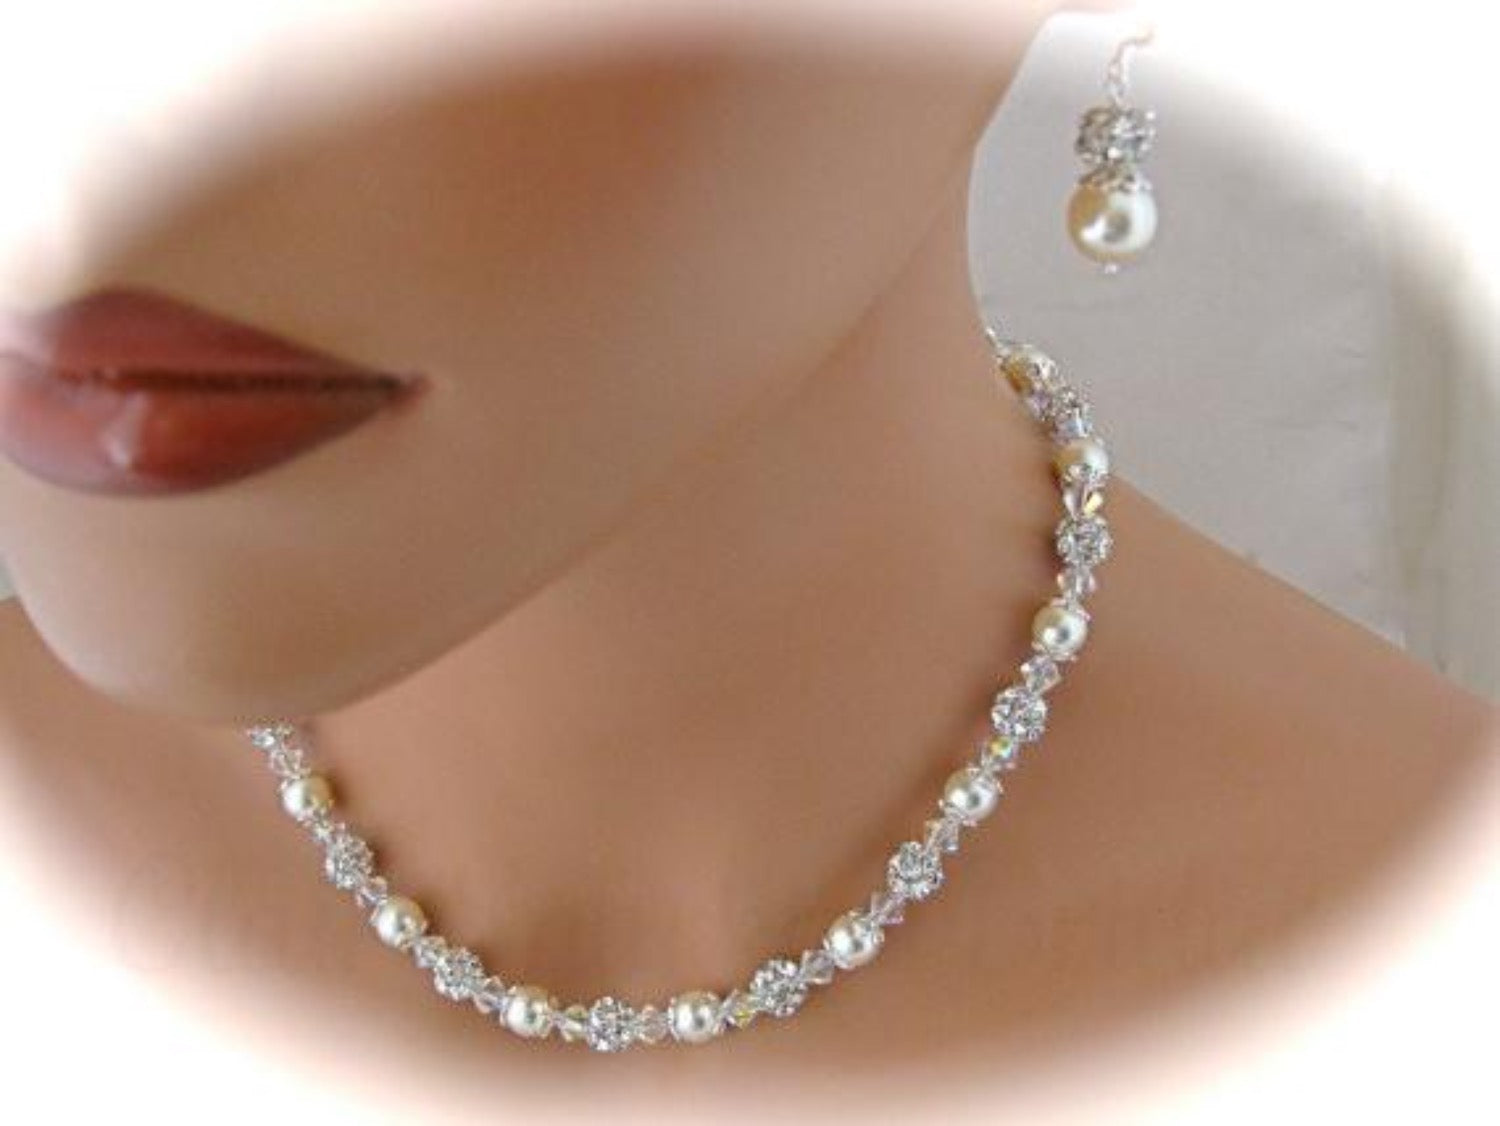 Wedding Jewelry Set Swarovski Pearl and Crystal Necklace and Earrings - Clairesbridal - 4